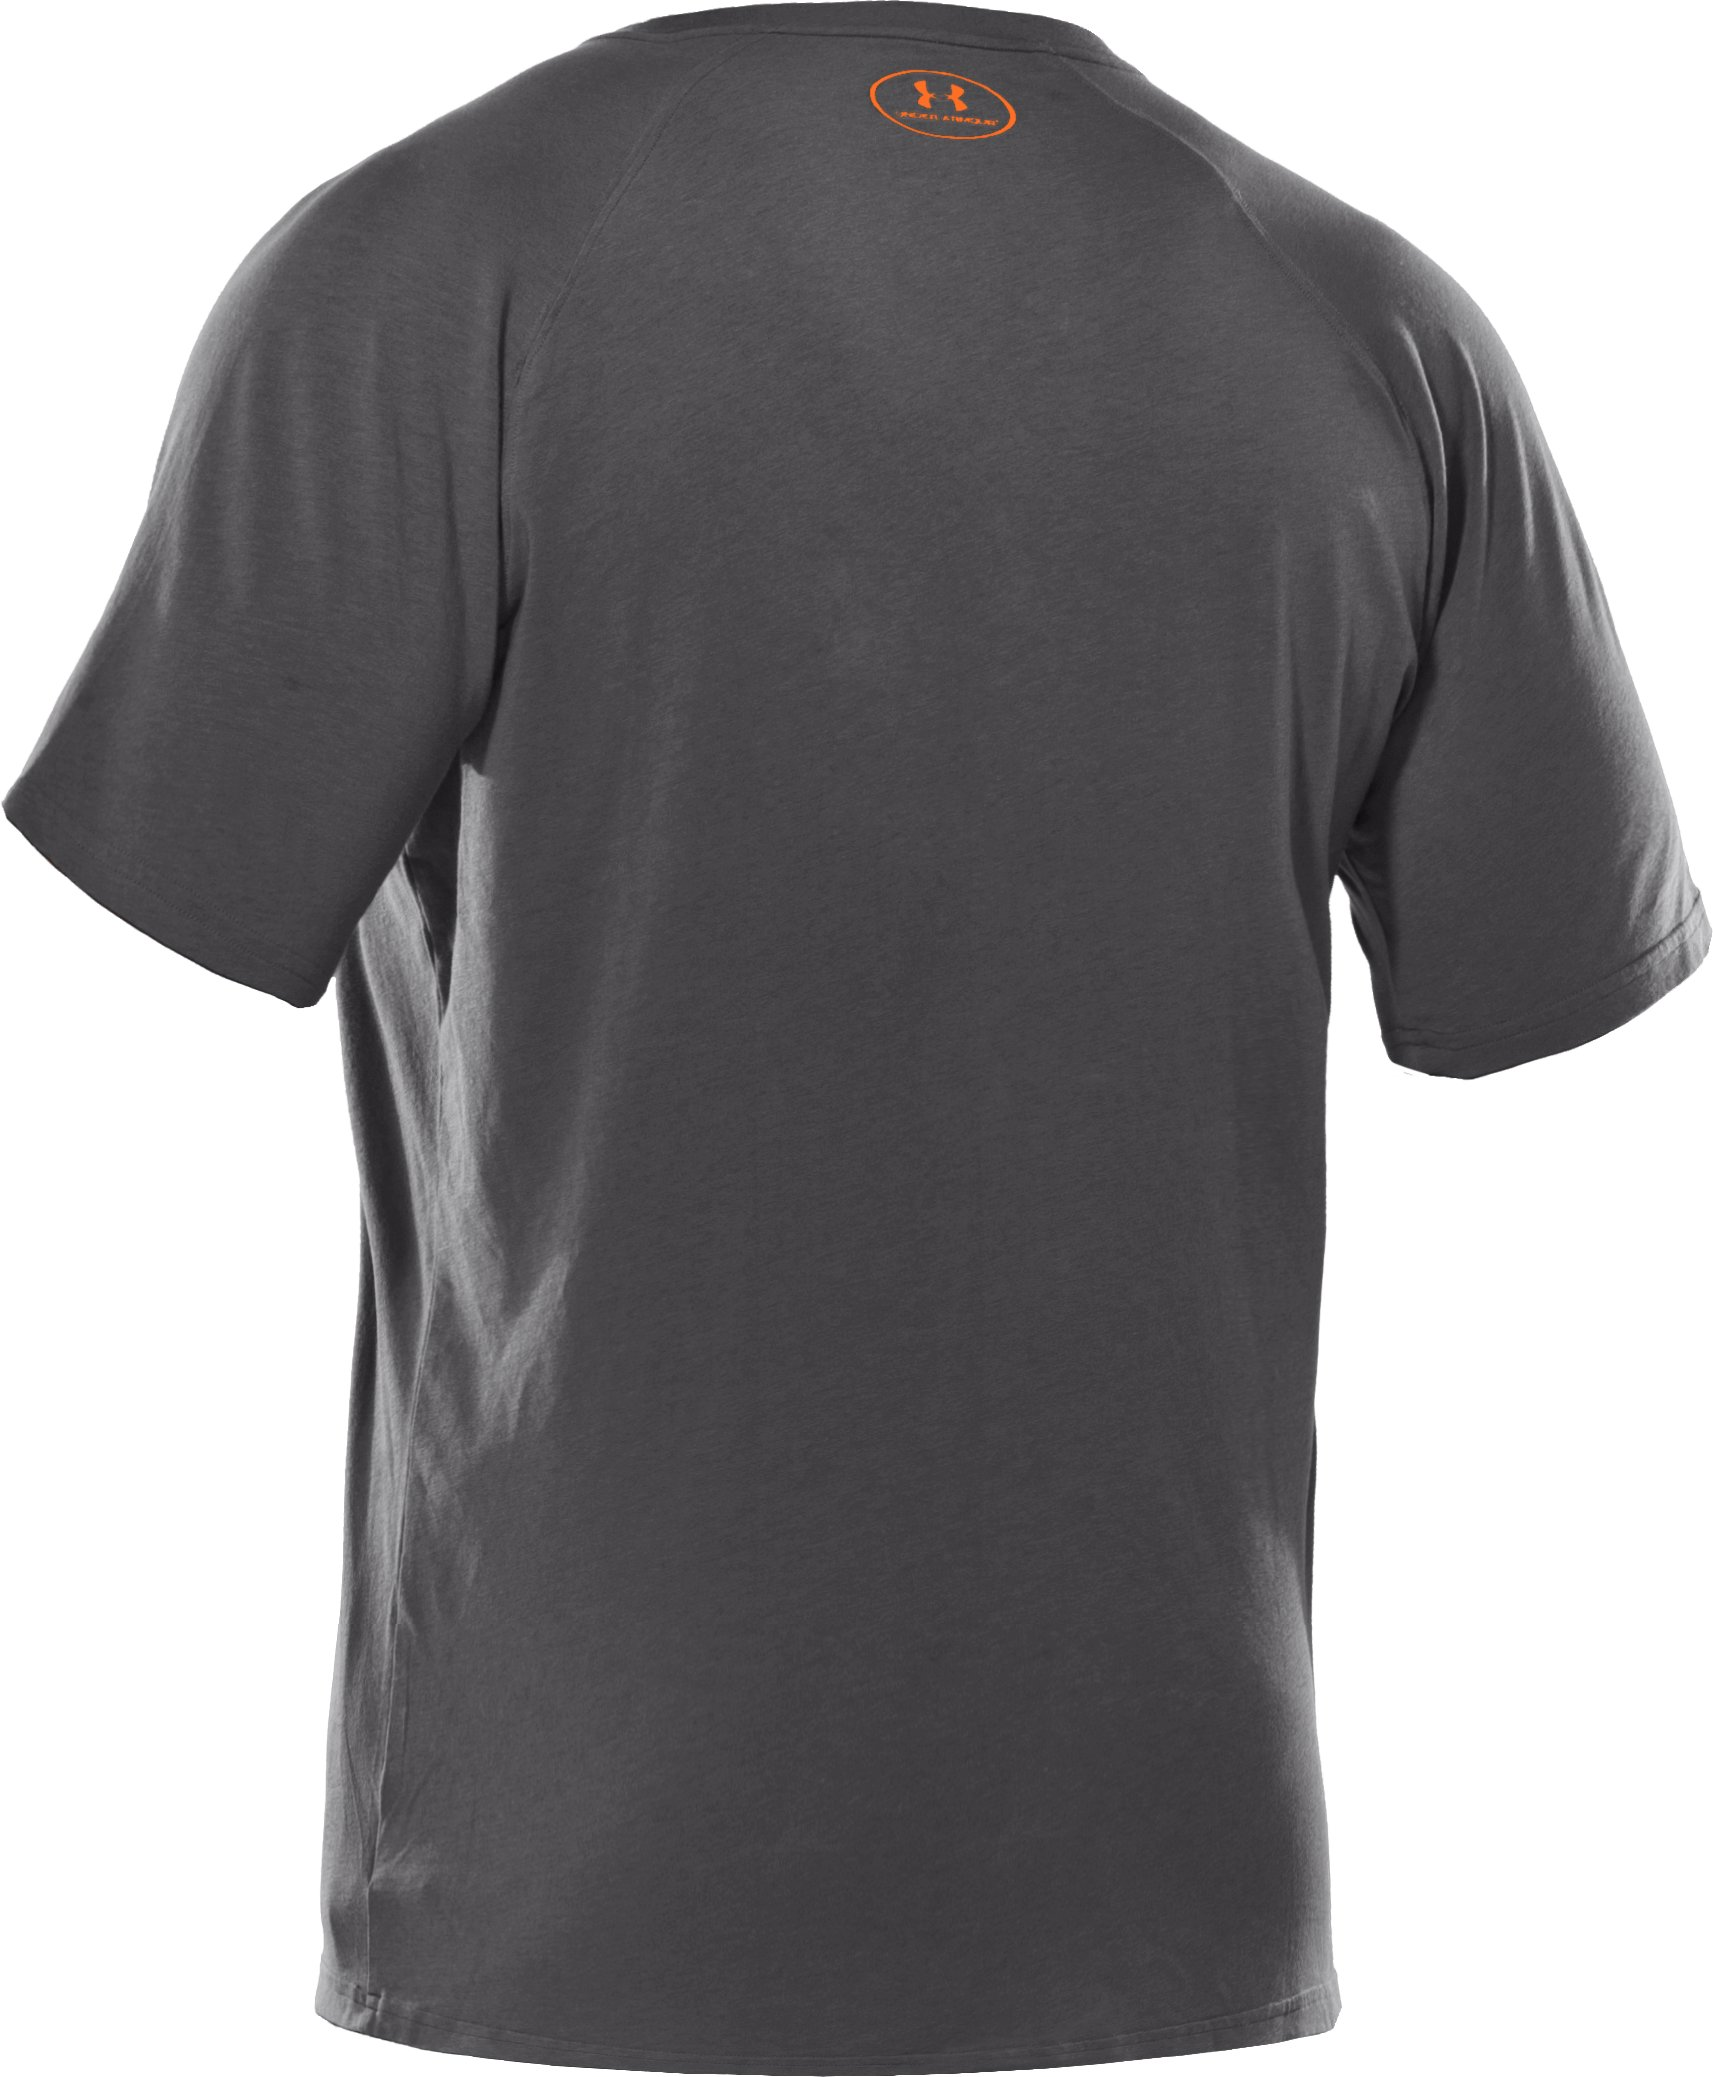 Men's Charged Cotton® V-Neck T-Shirt, Graphite